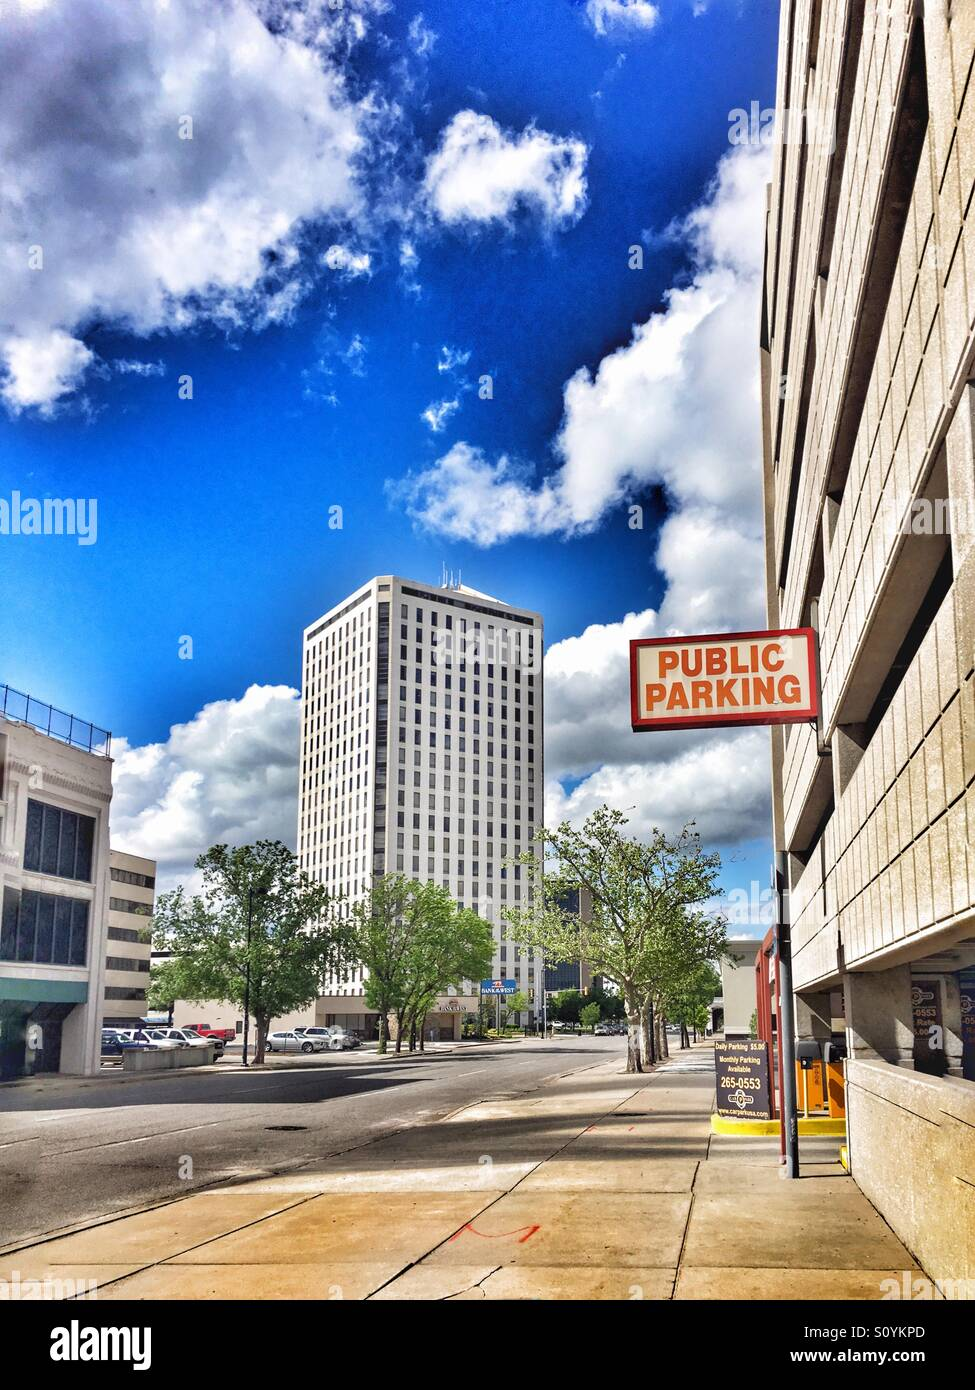 Looking Down Main Street In Wichita Ks At A Parking Garage And The